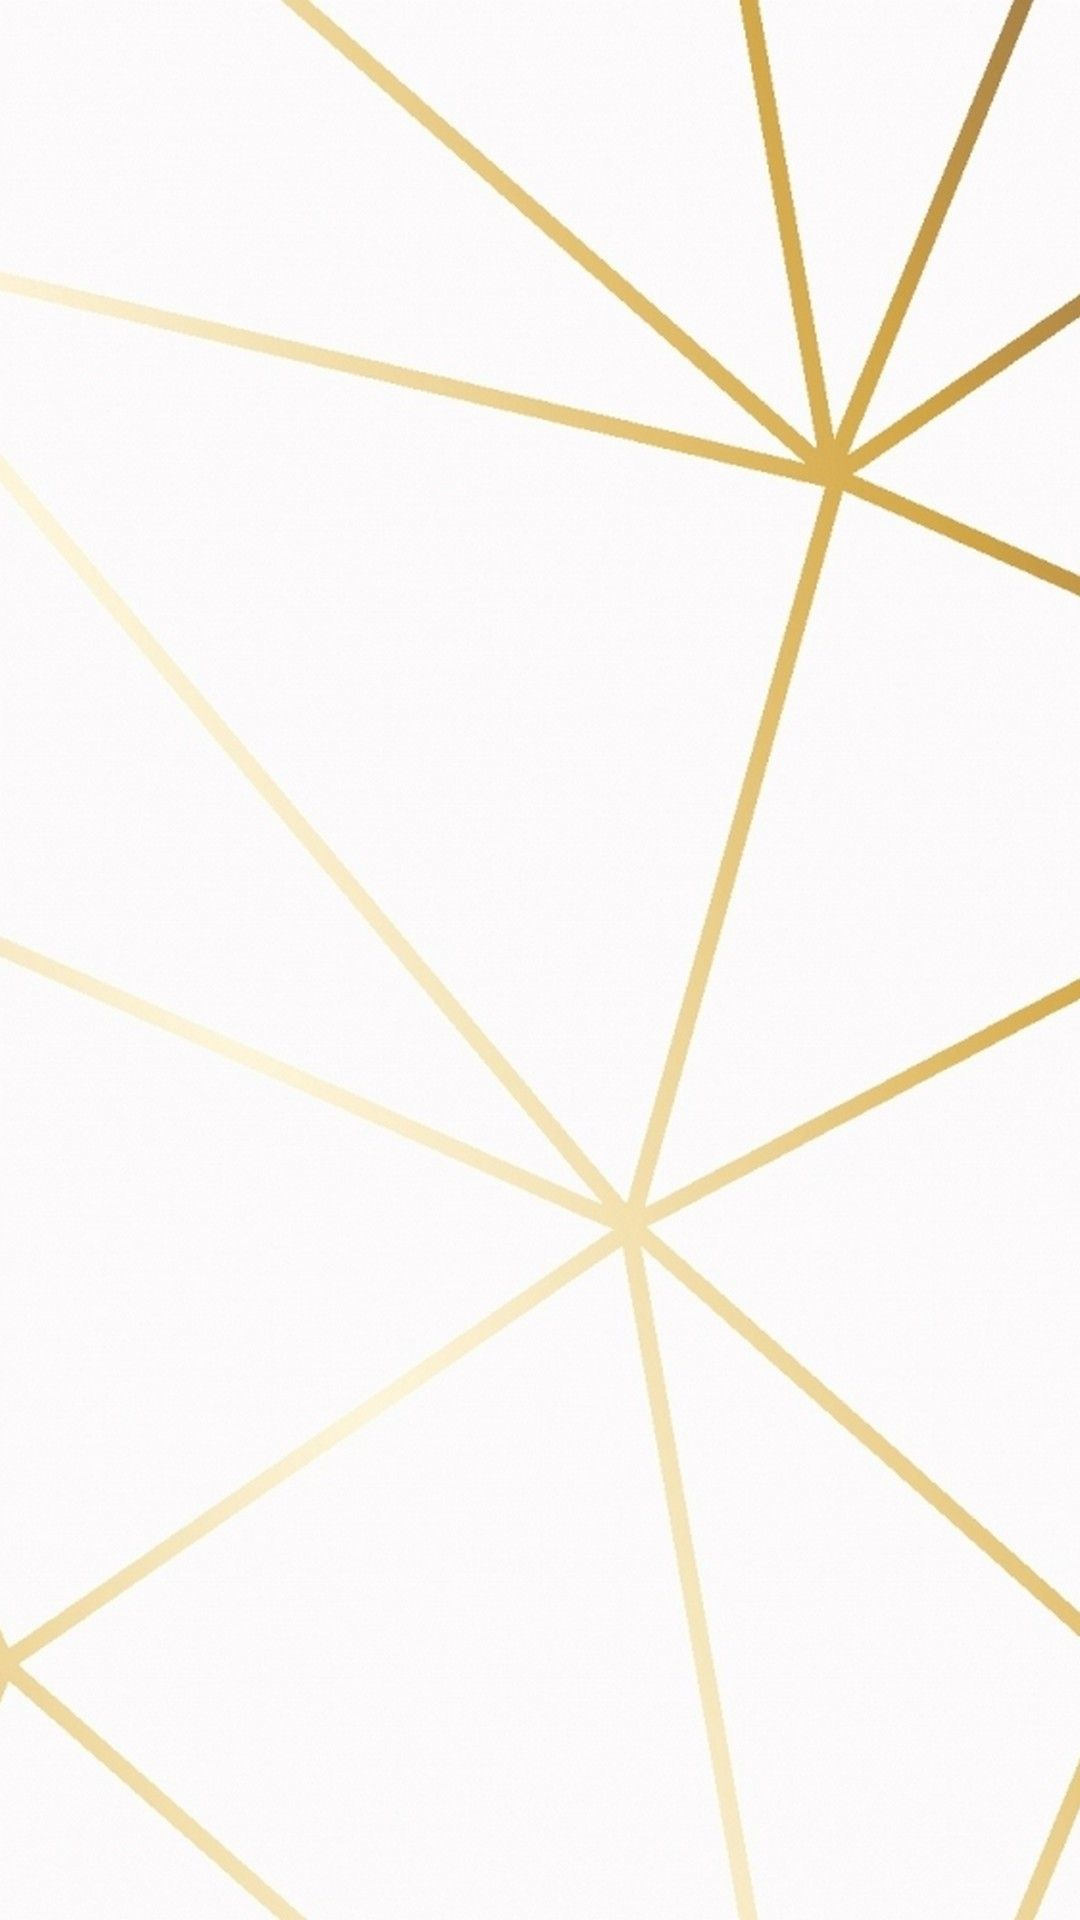 White And Gold Android Wallpaper Best Android Wallpapers Gold Wallpaper Iphone Gold Wallpaper Phone White And Gold Wallpaper